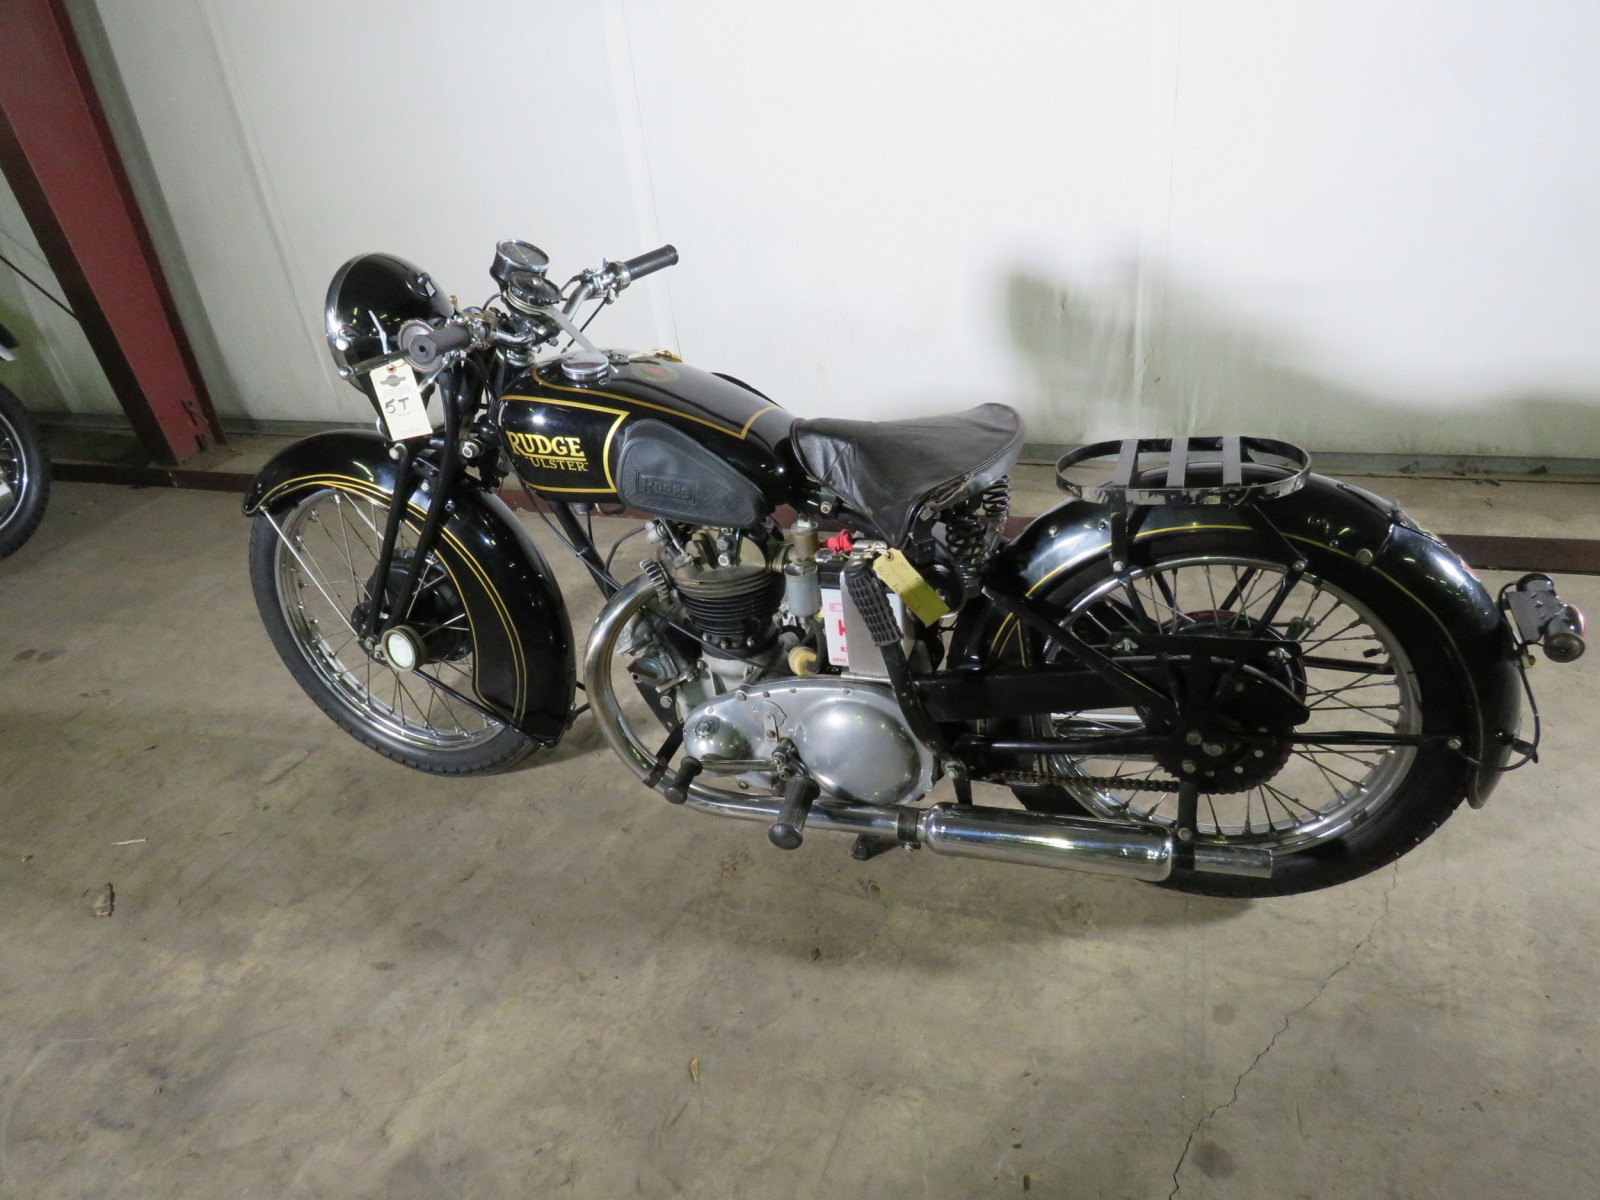 1939 Rudge Ulster Prewar Road Race Motorcycle - Image 1